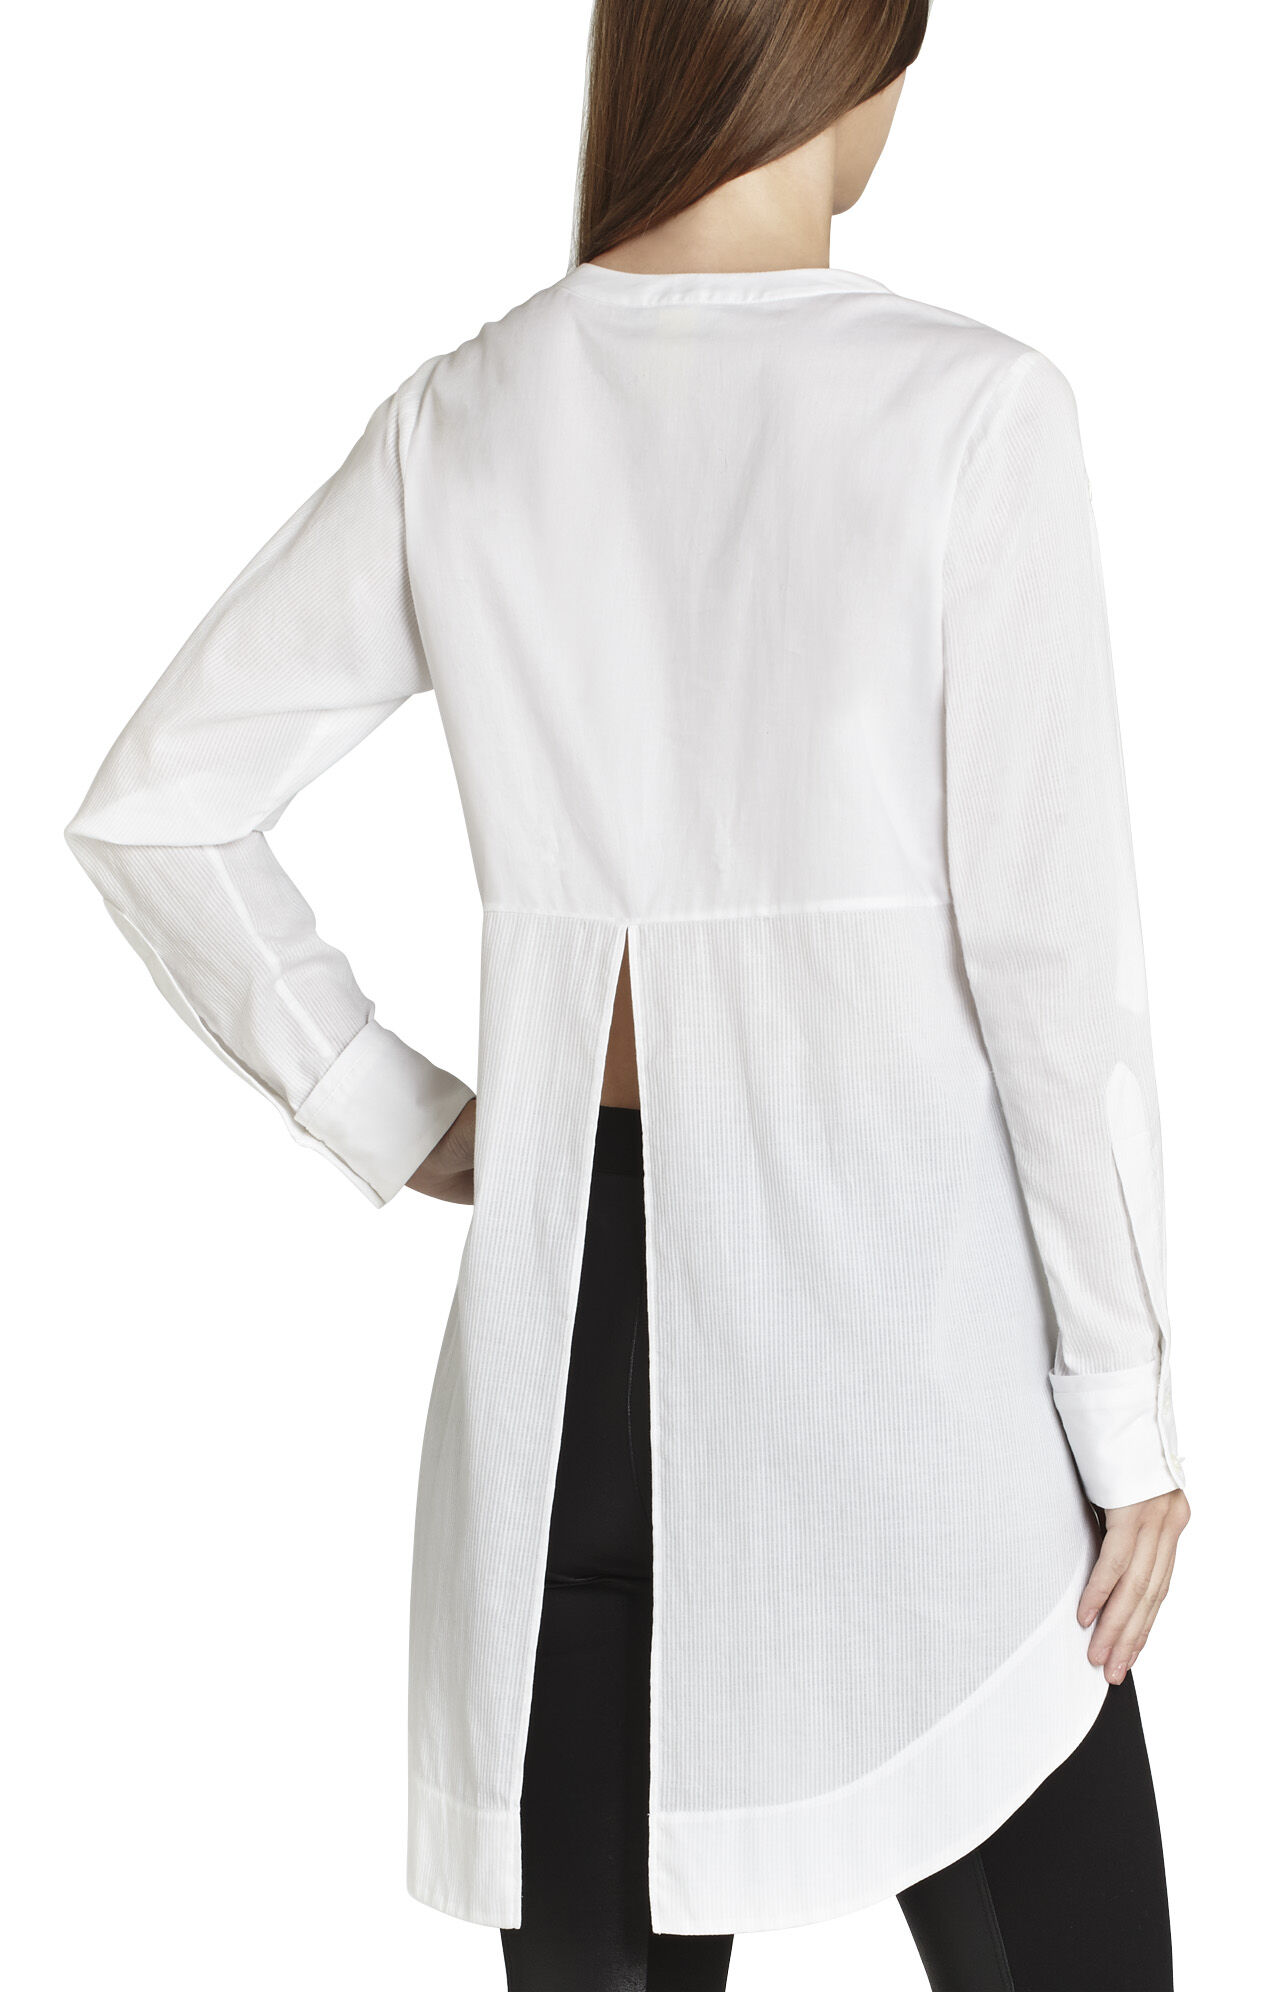 Chloie Double-Placket Long Shirt